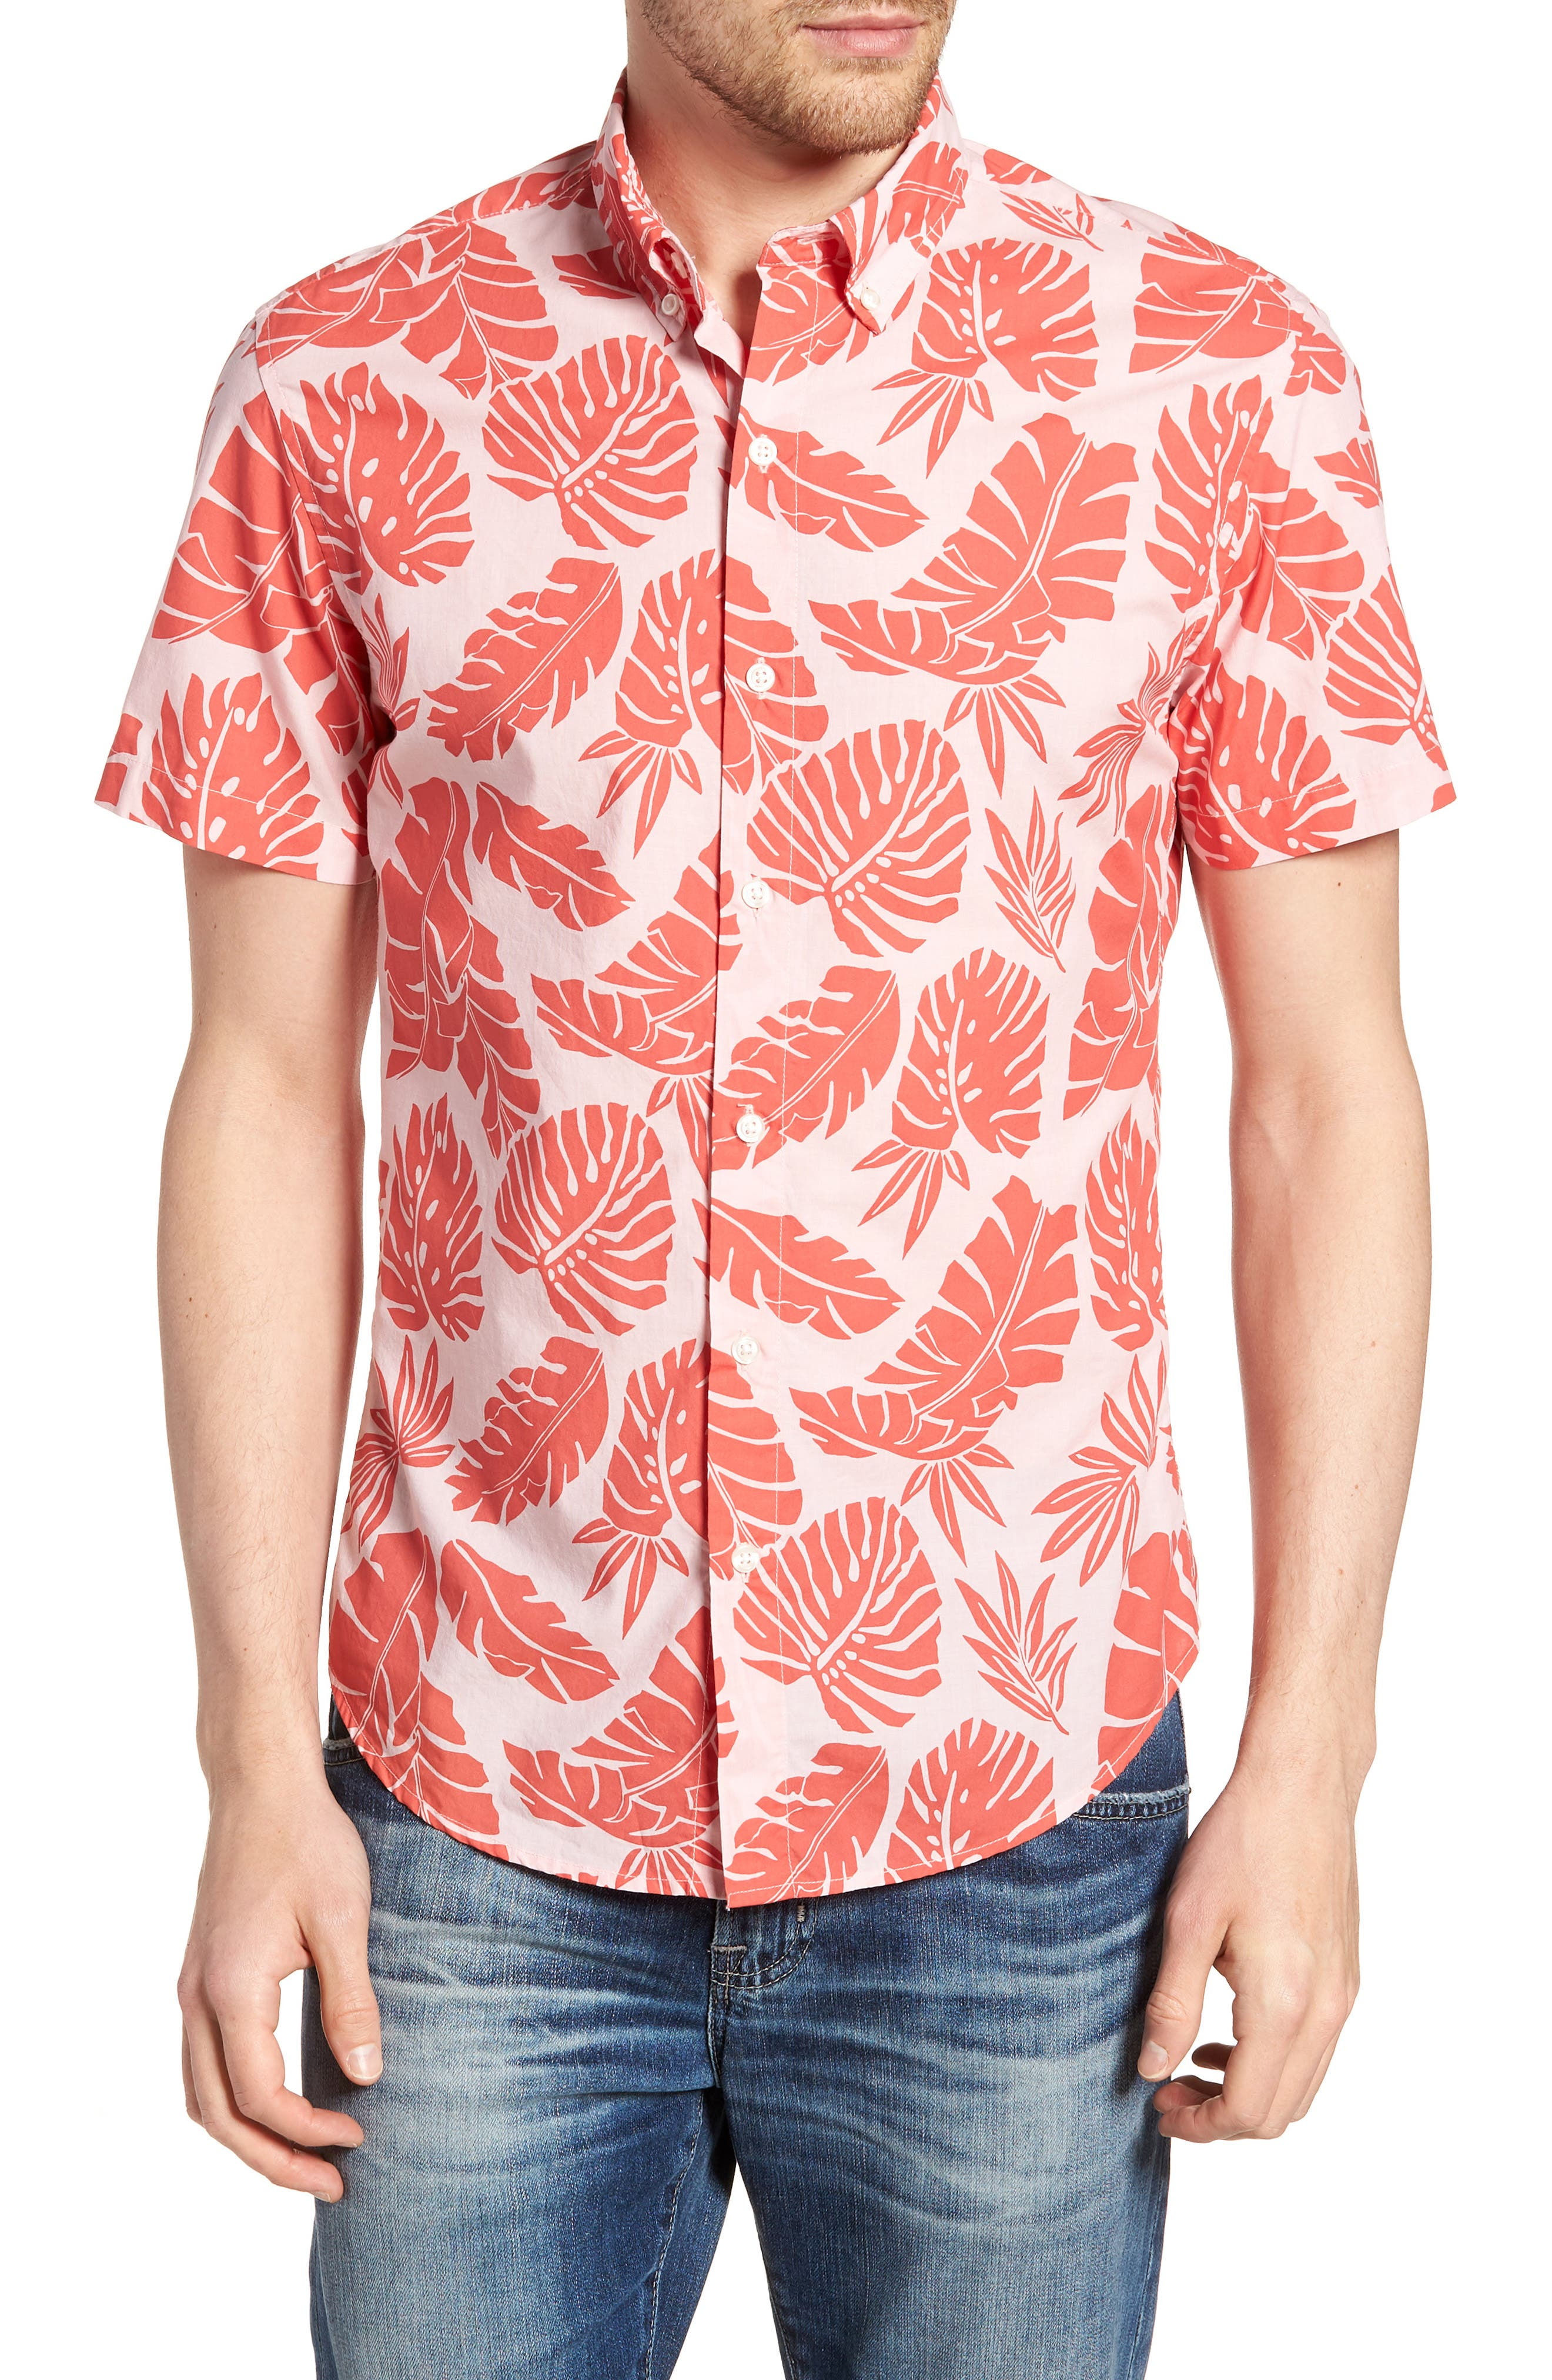 Riviera Slim Fit Palm Print Sport Shirt,                         Main,                         color, Palm Scatter - Coral Fan